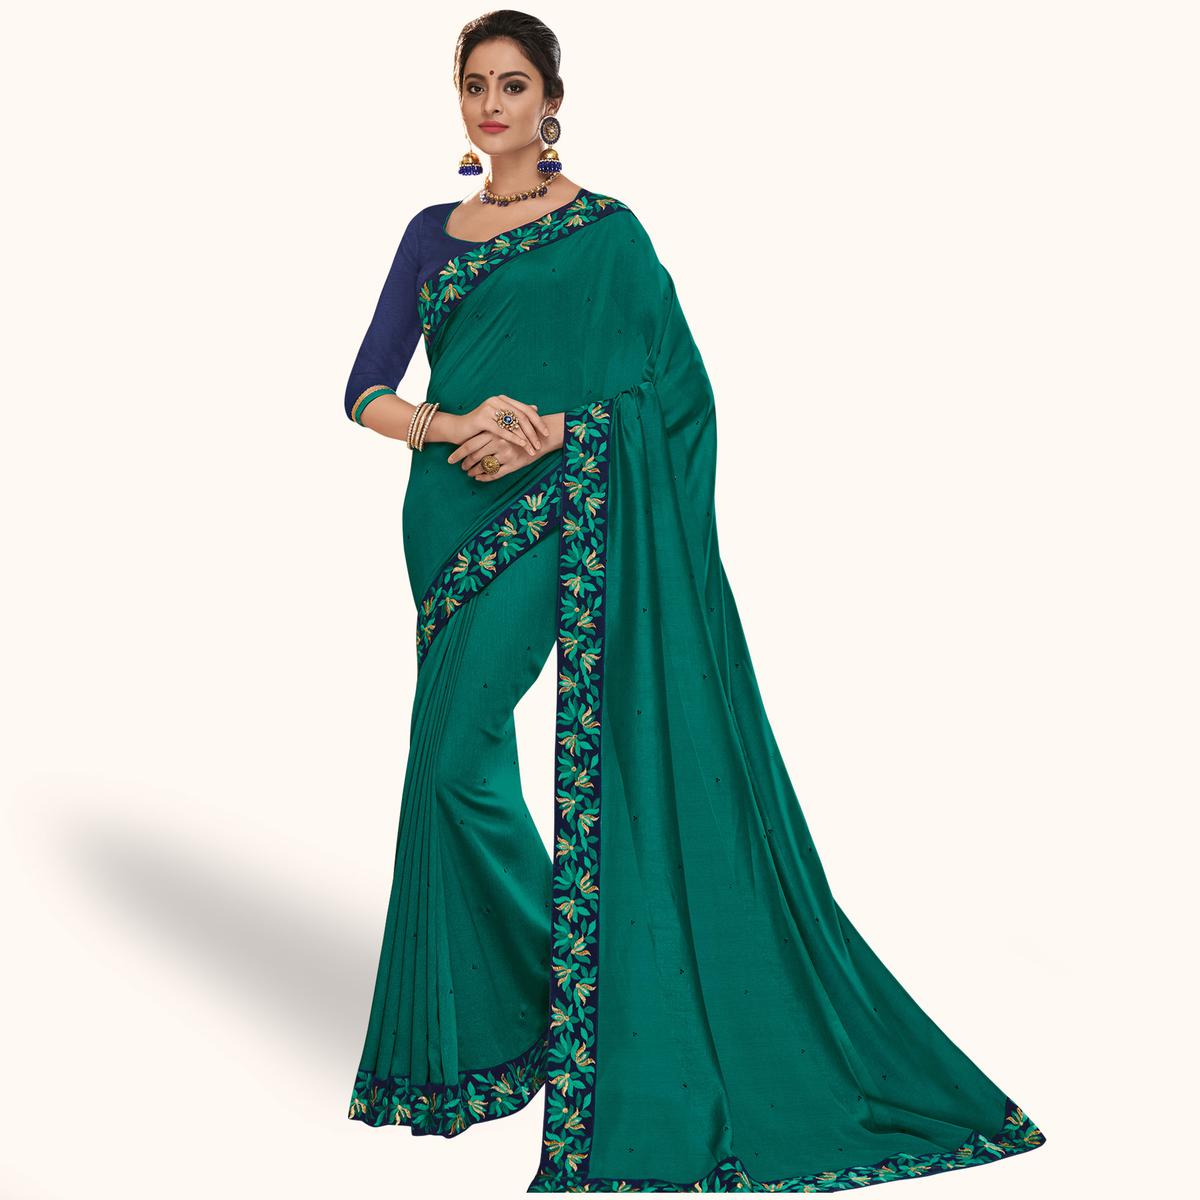 Charming Teal Green Colored Partywear Embroidered Silk Saree